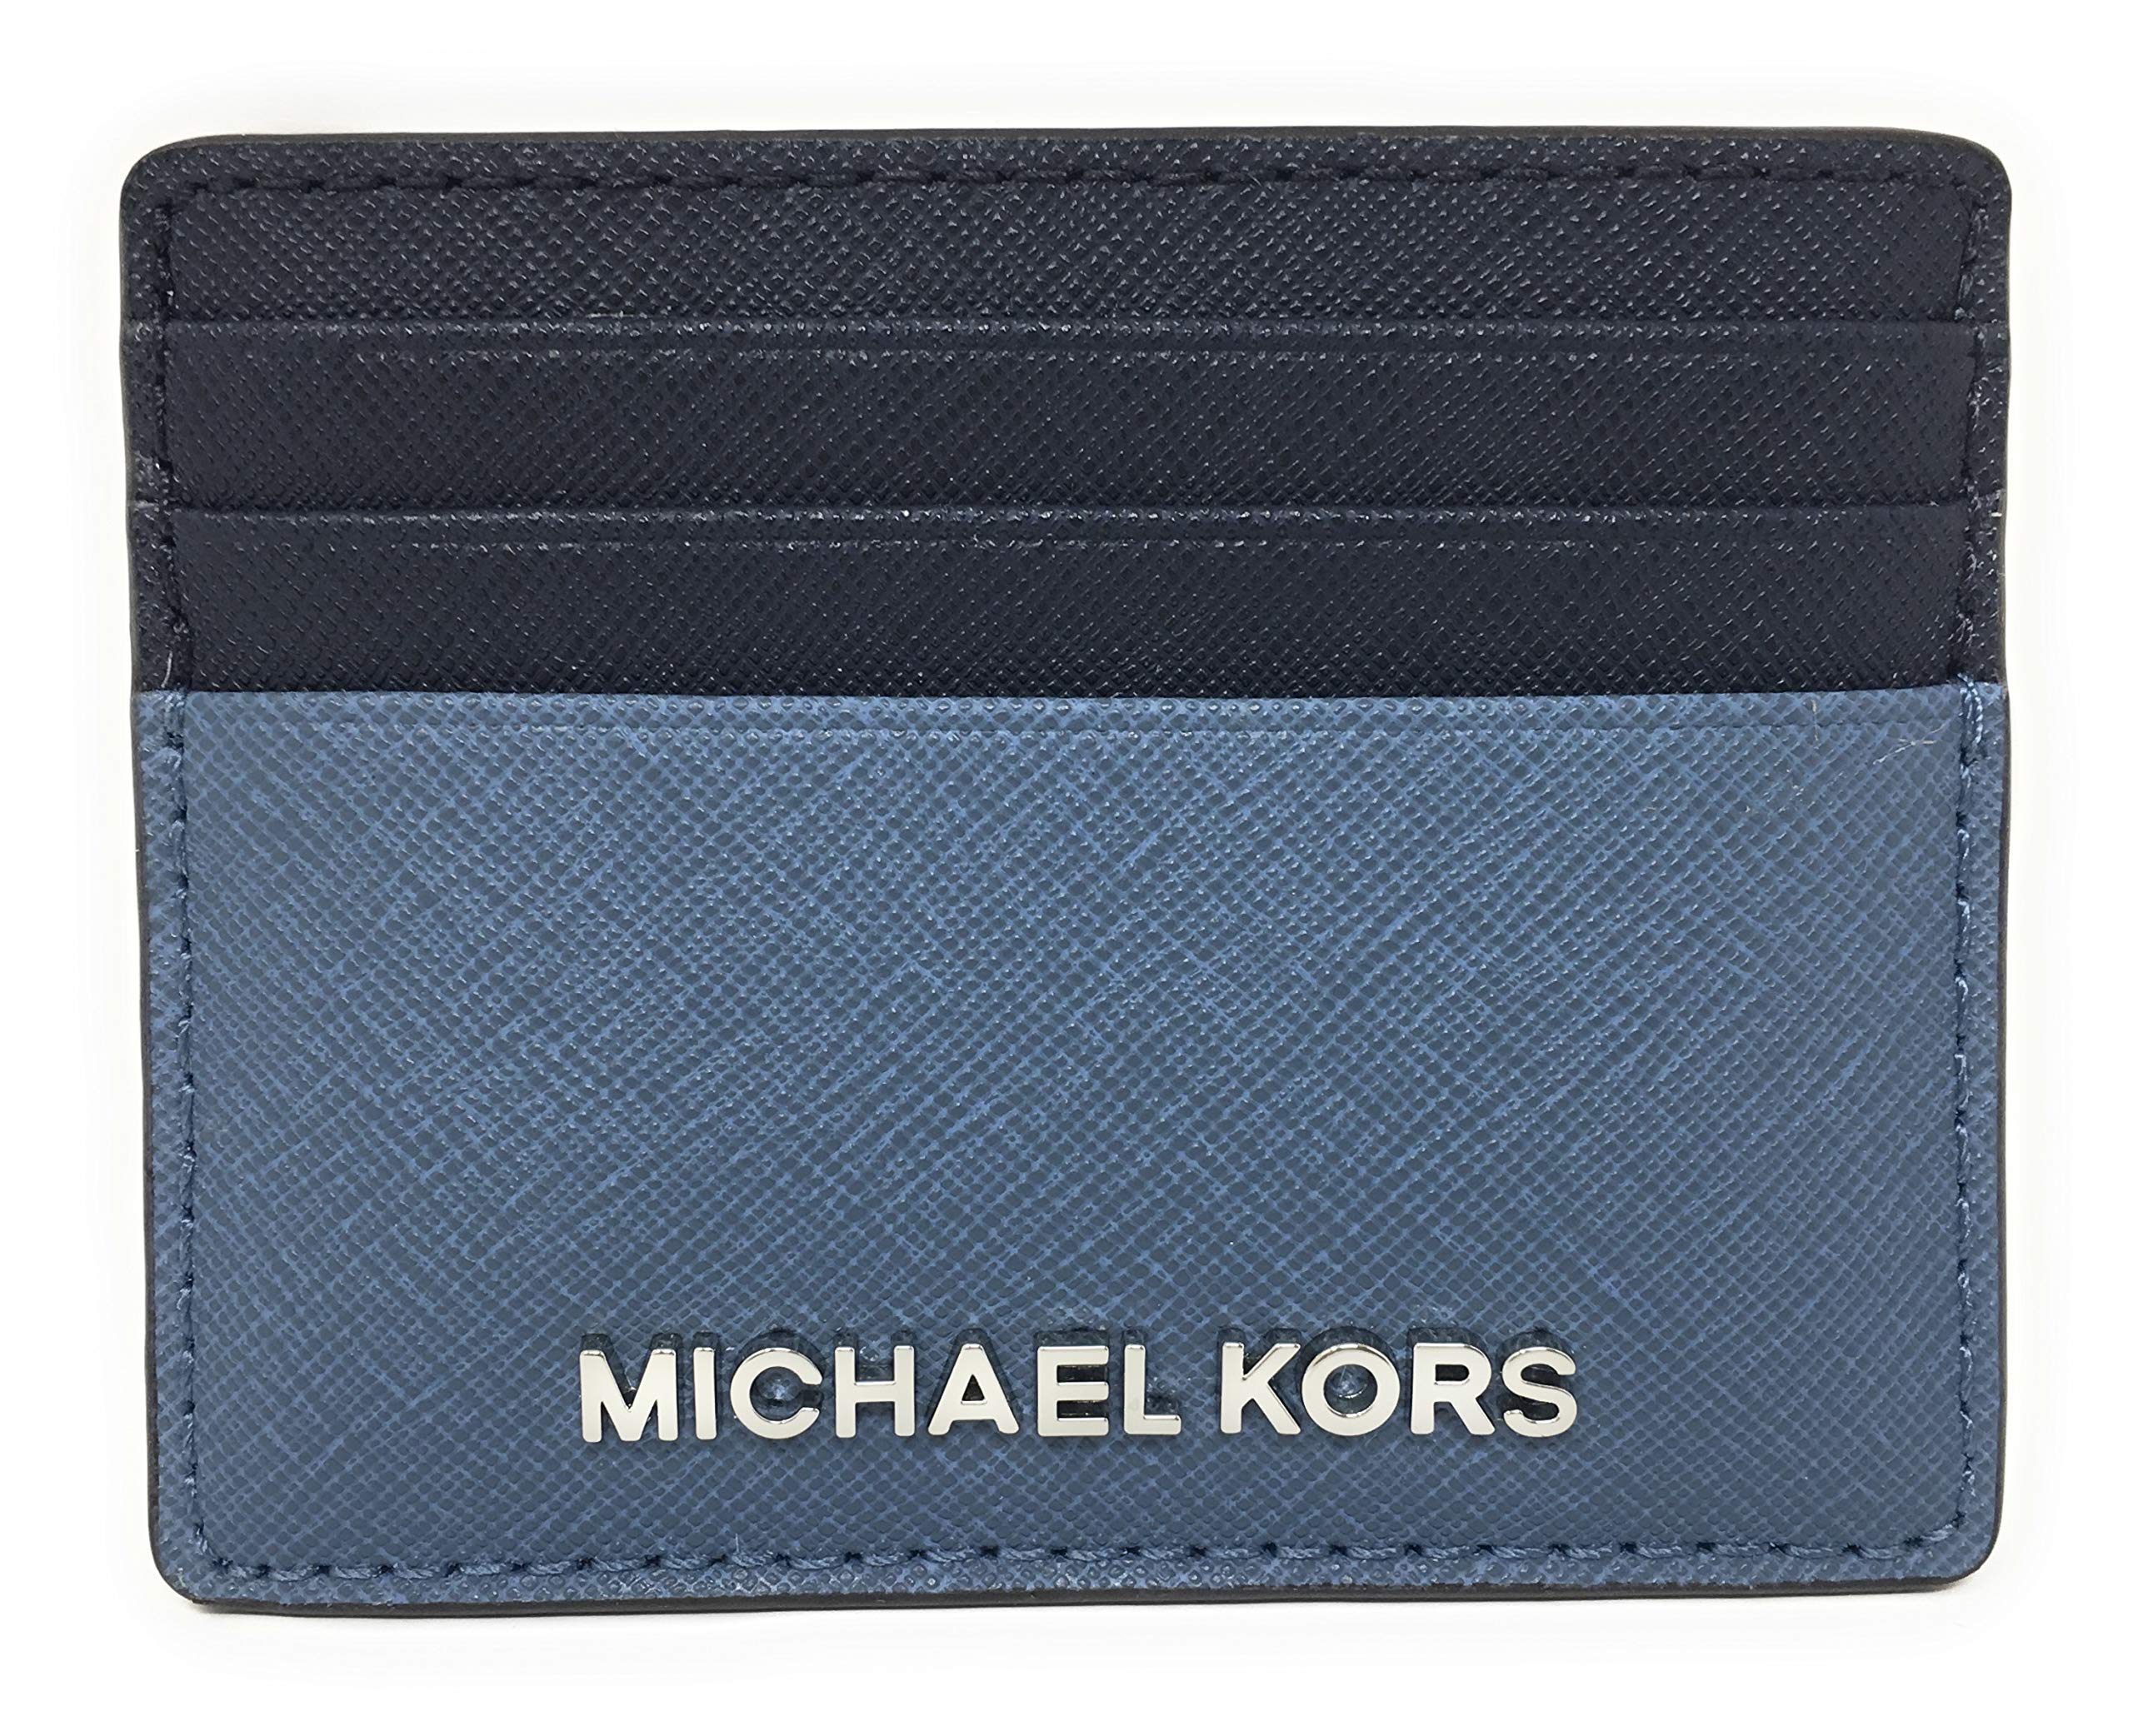 Michael Kors Jet Set Travel Large Saffiano Leather Card Holder (Denim/Navy with Silver)